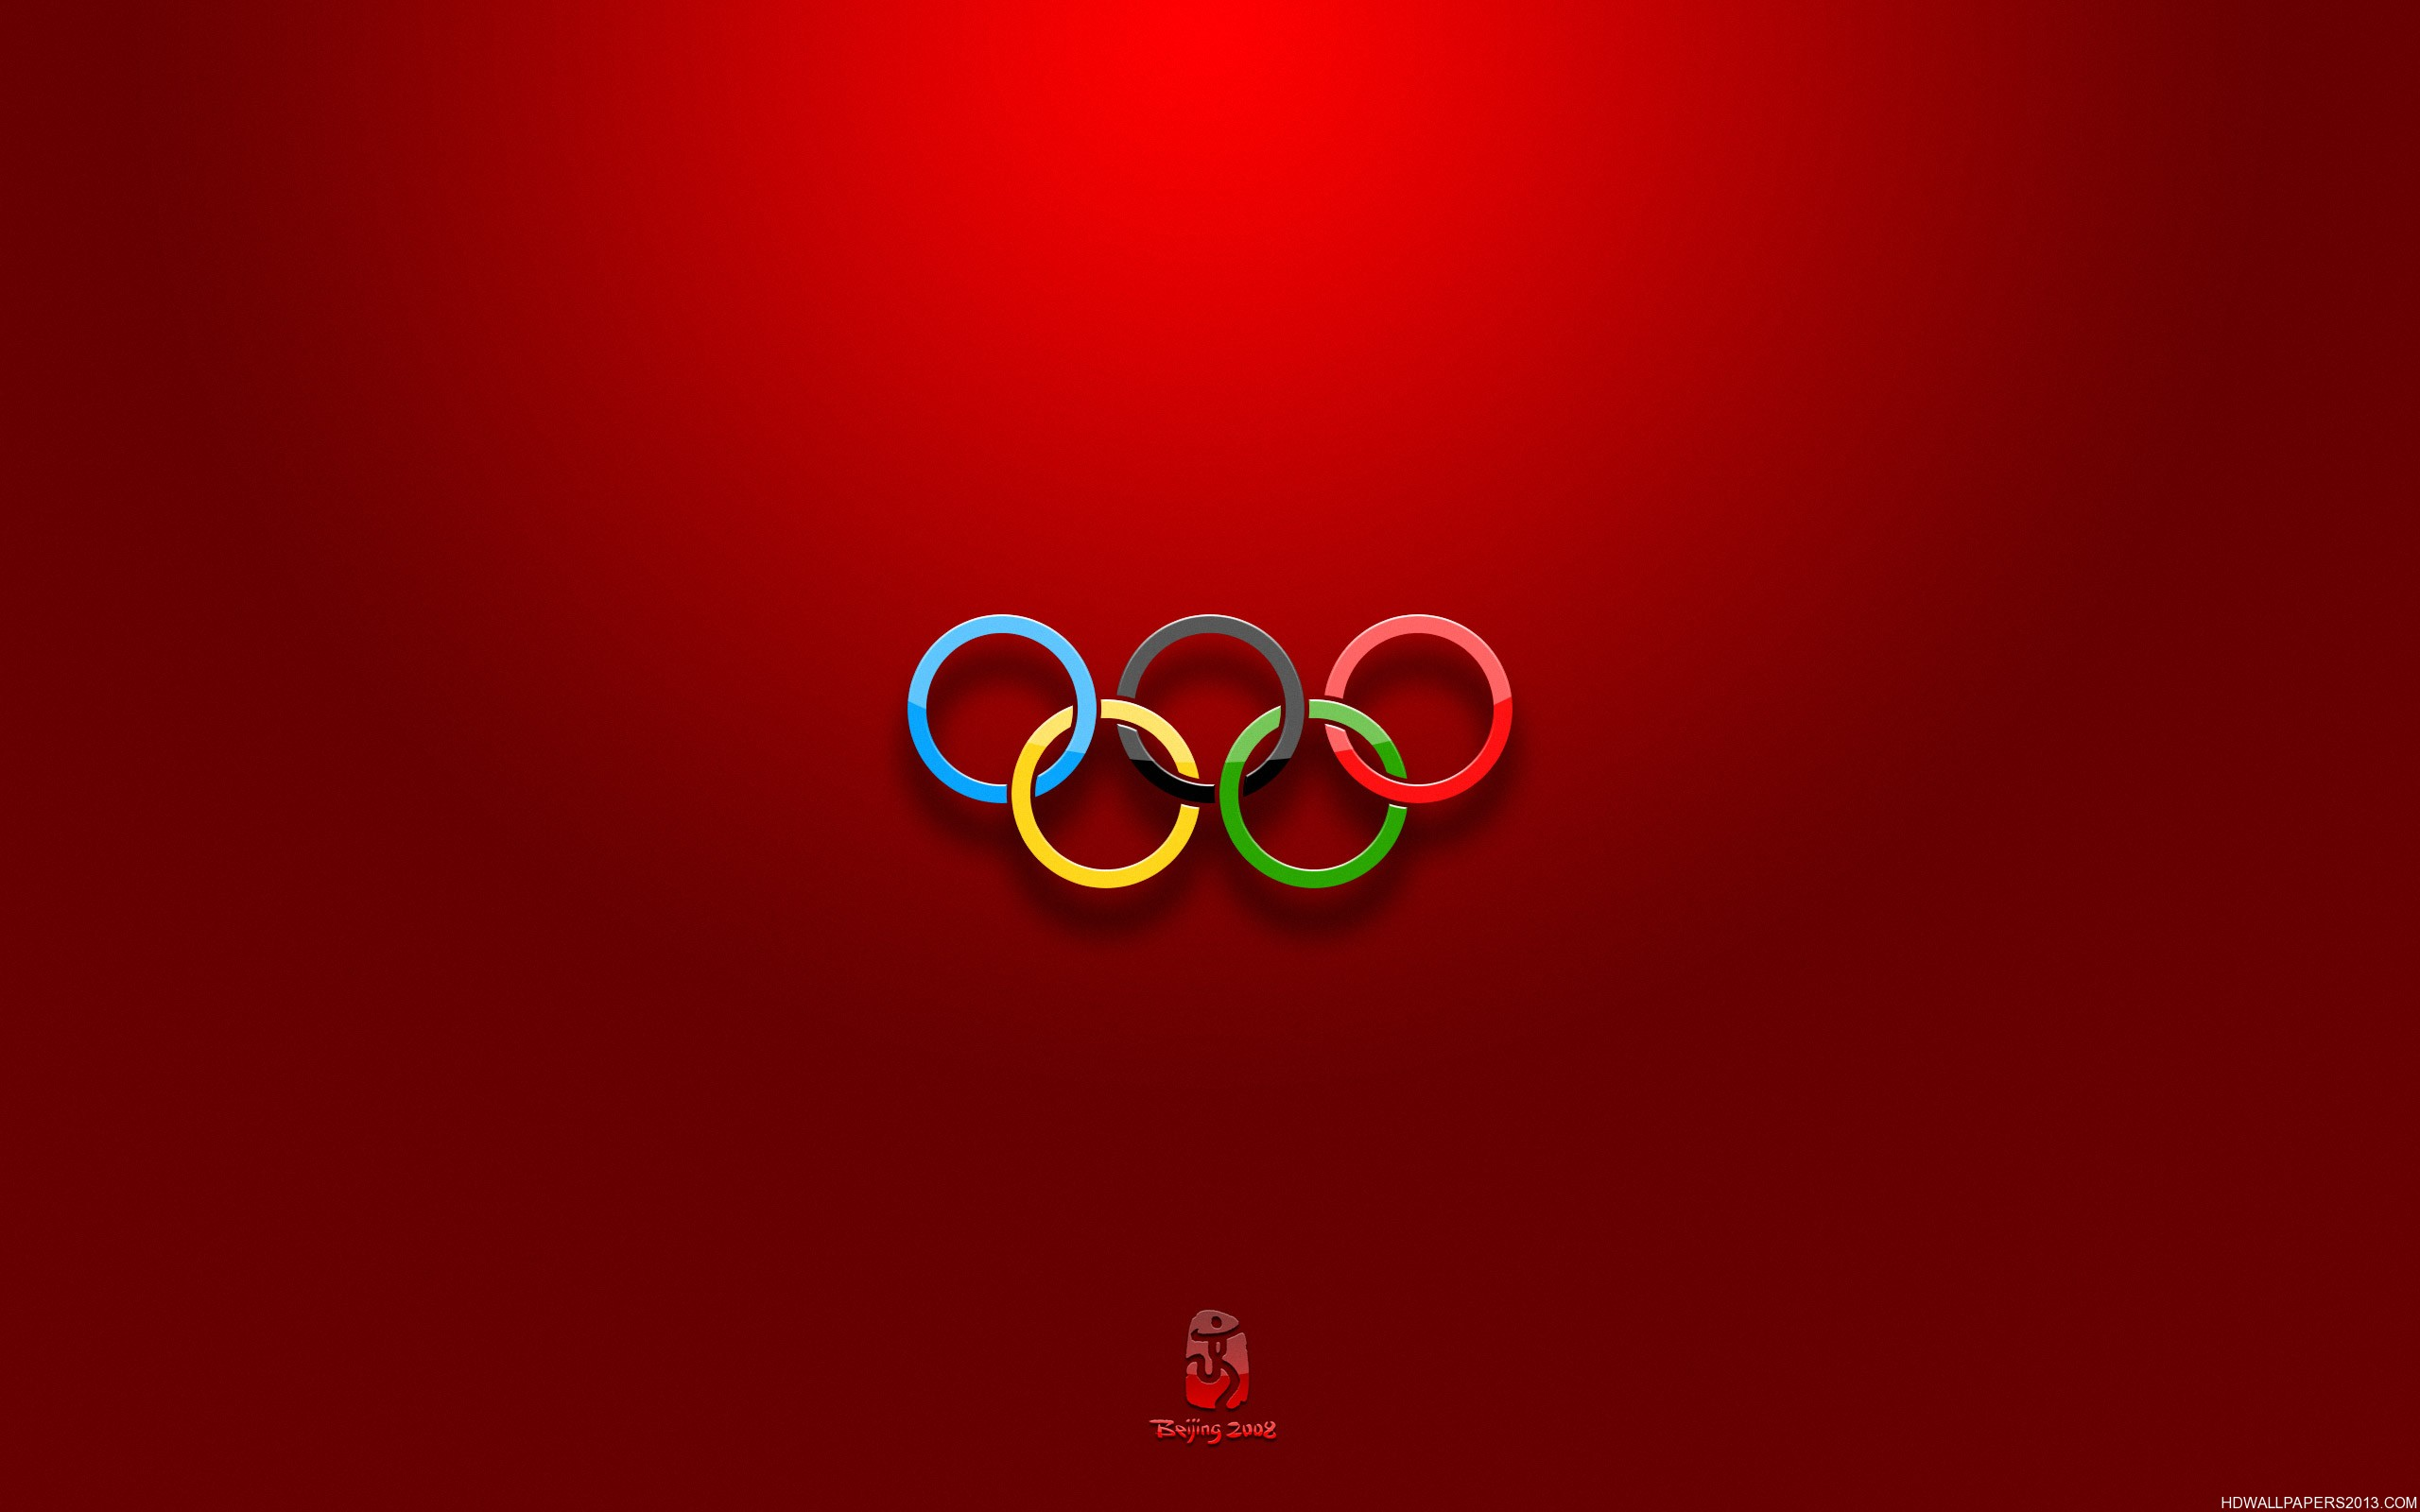 What A Very Universally Proud HD Wallpaper This Is Here We Have Our Olympic Logo And No Matter Where Your From Around The Globe Must Make